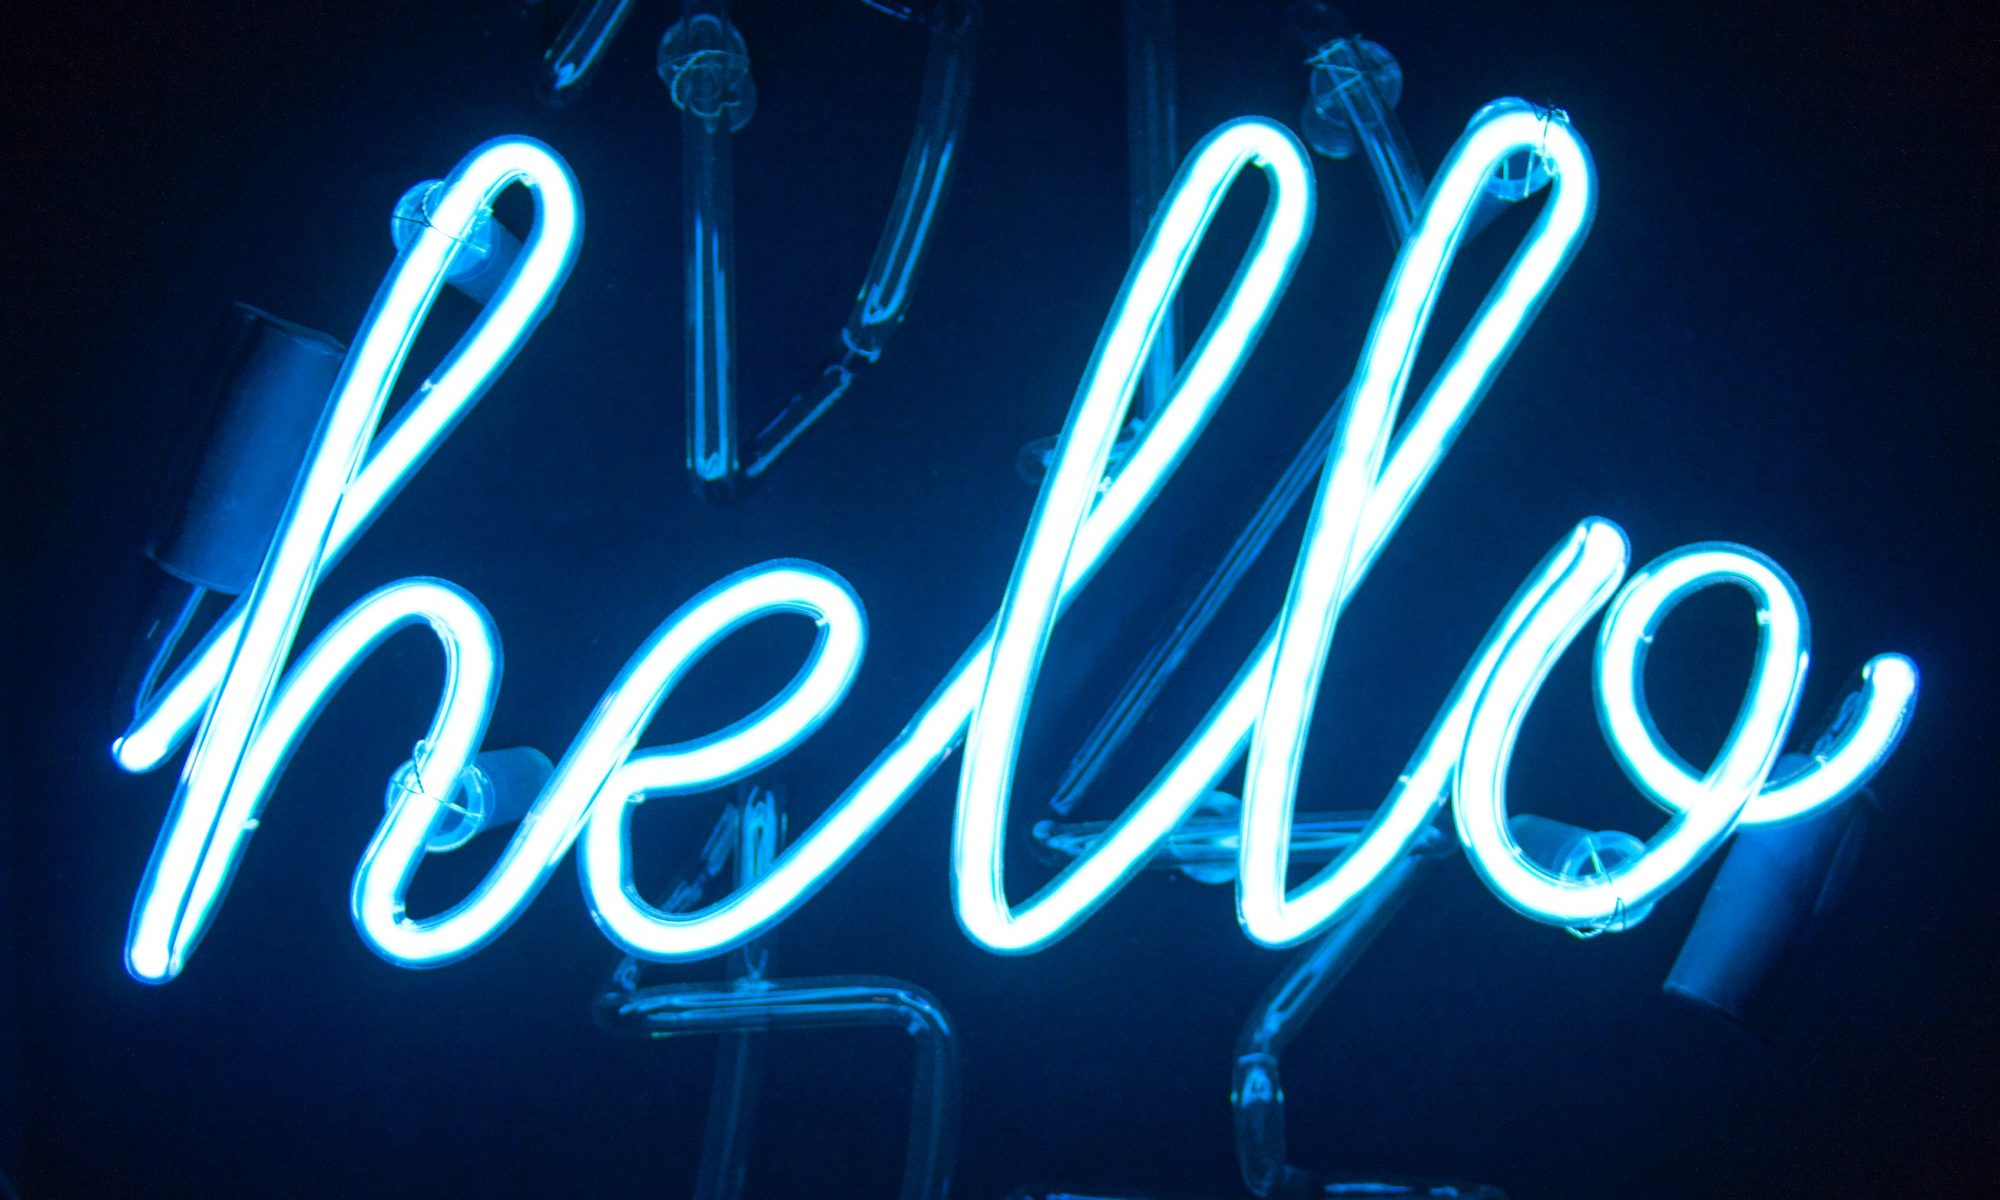 Hello in neon lights